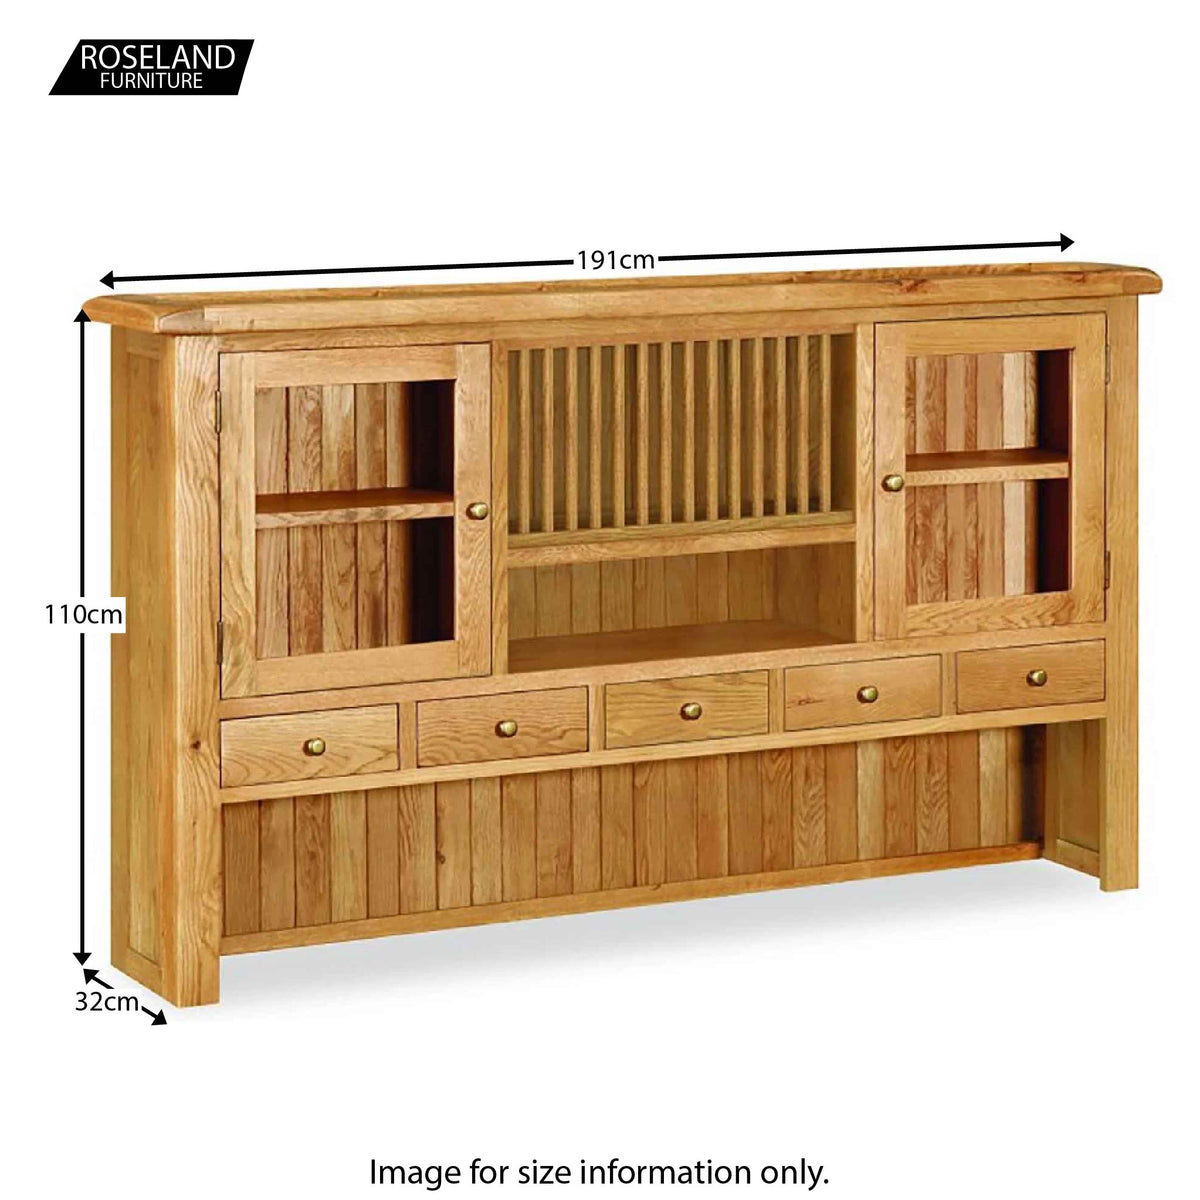 Zelah Oak Extra Large Sideboard Hutch - Size Guide